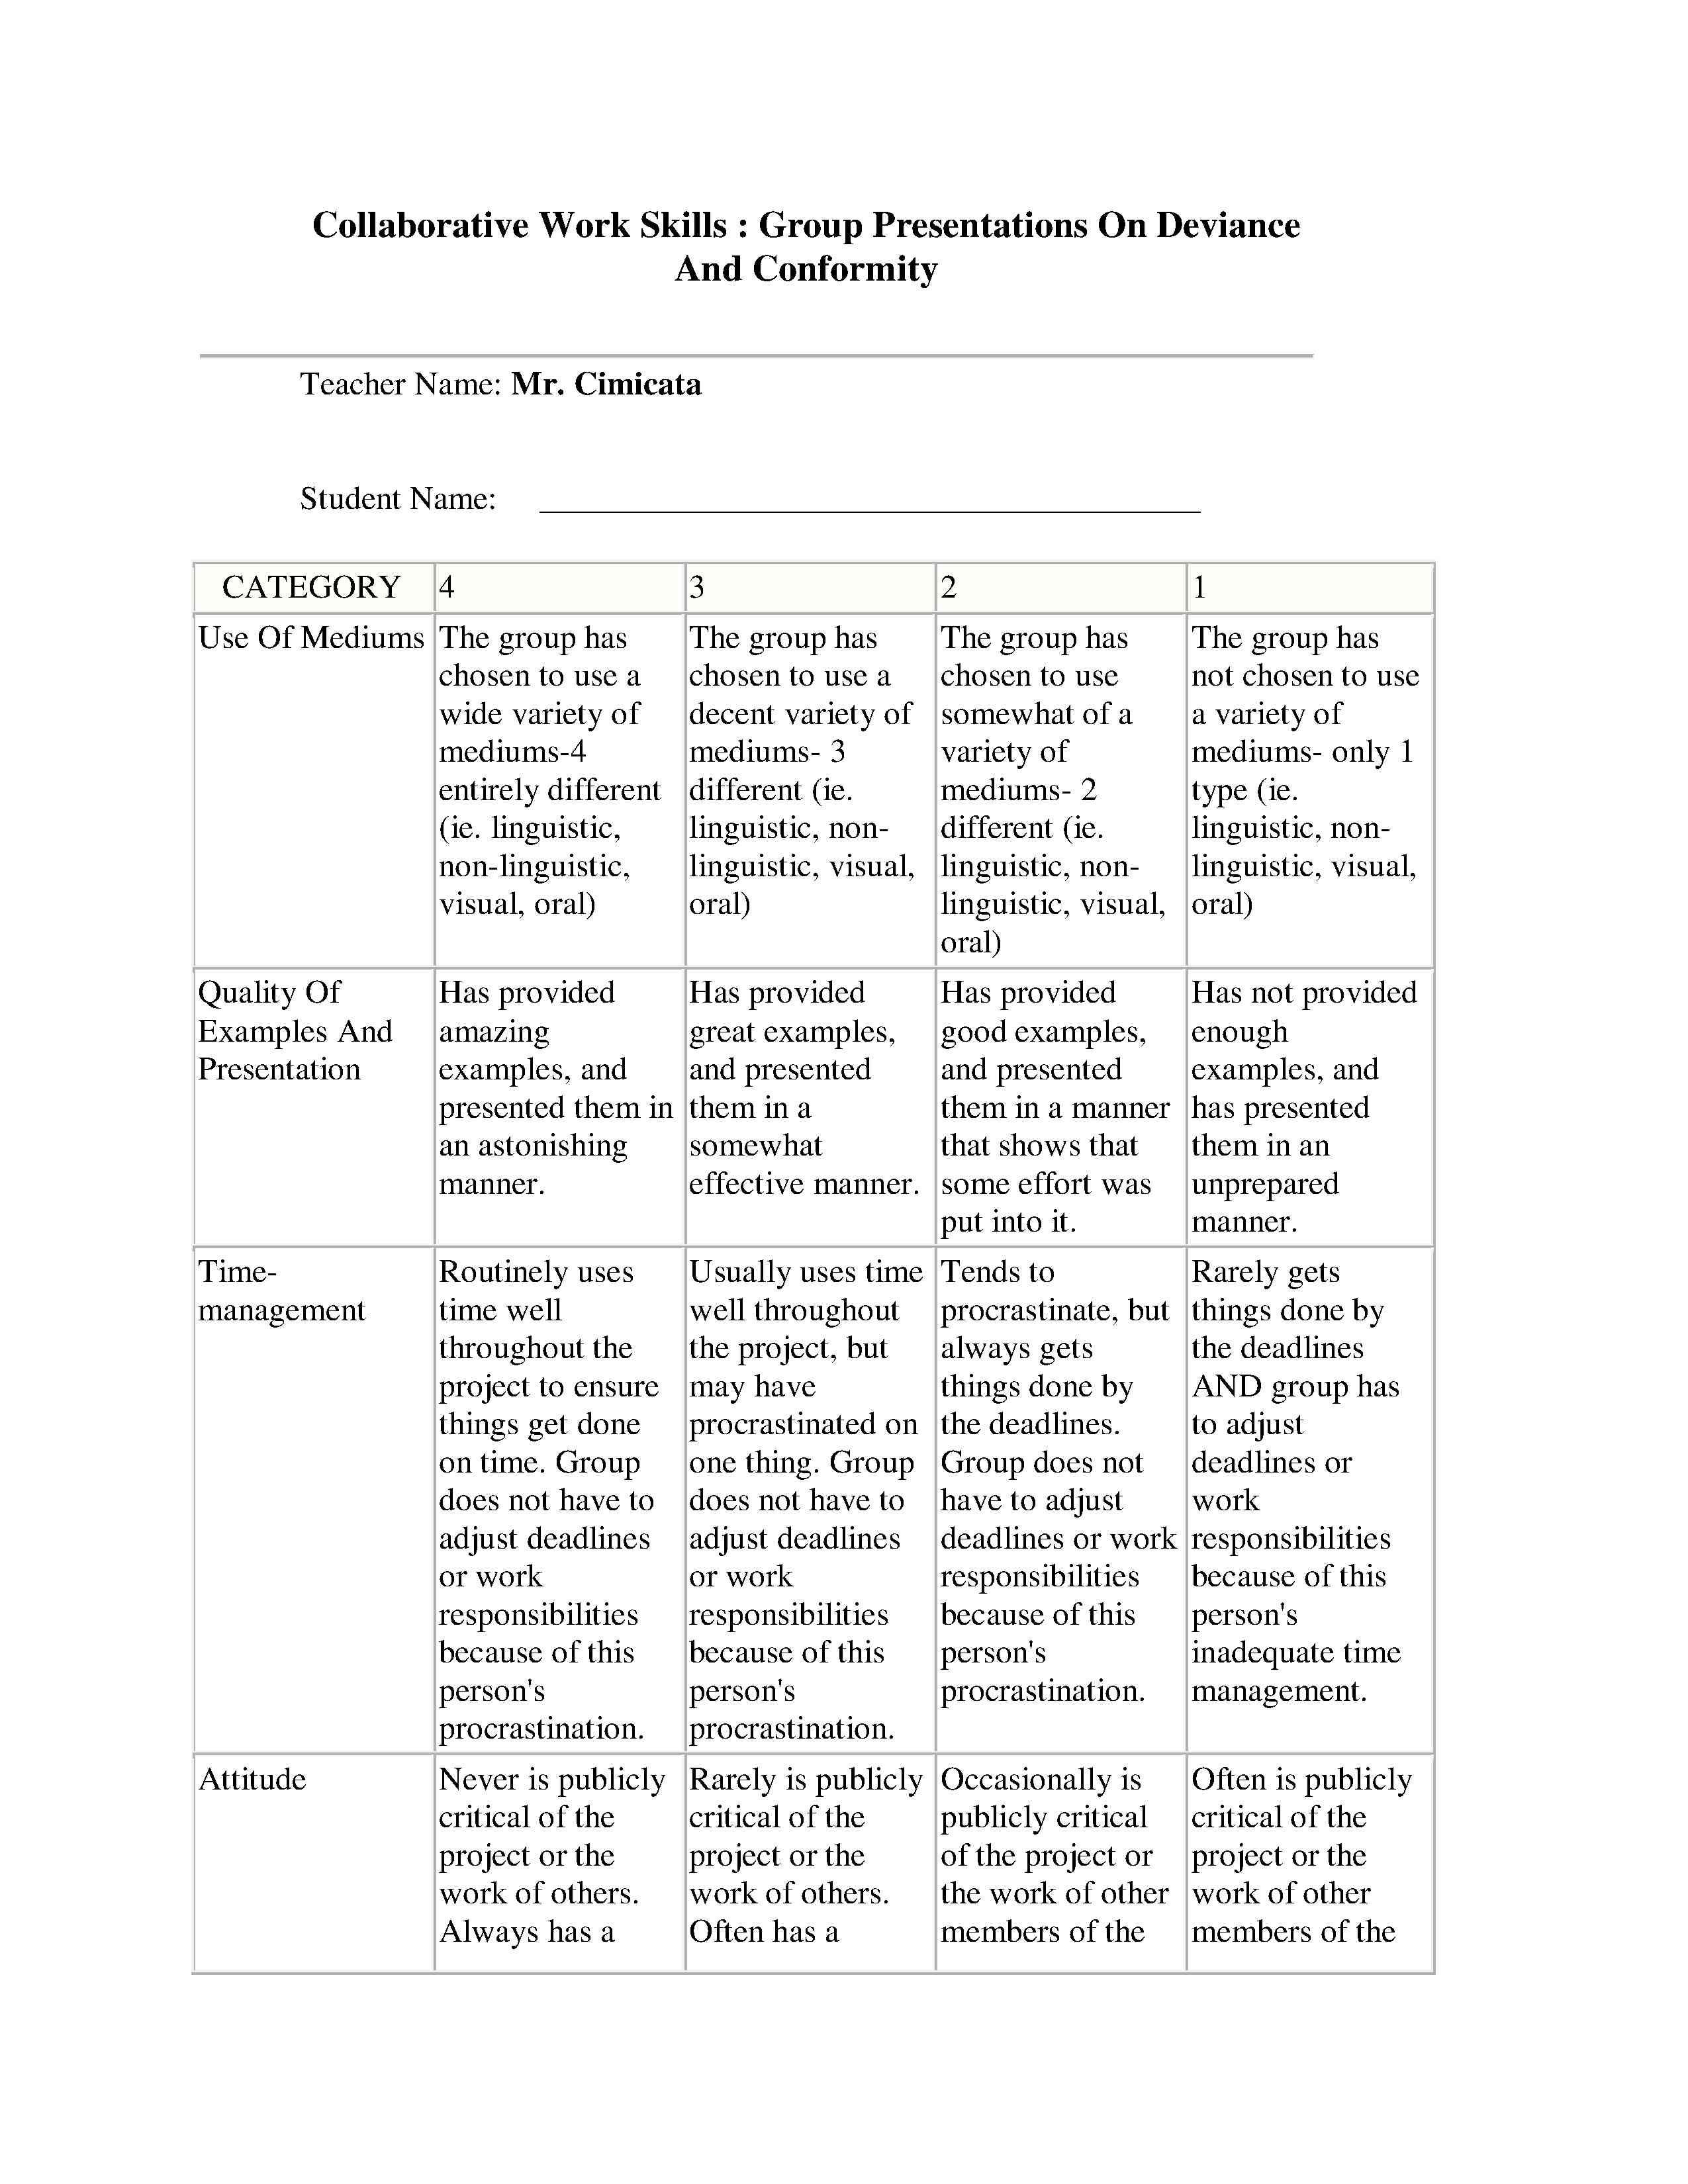 Group Presentations on Deviance And Conformity Rubric Page 1